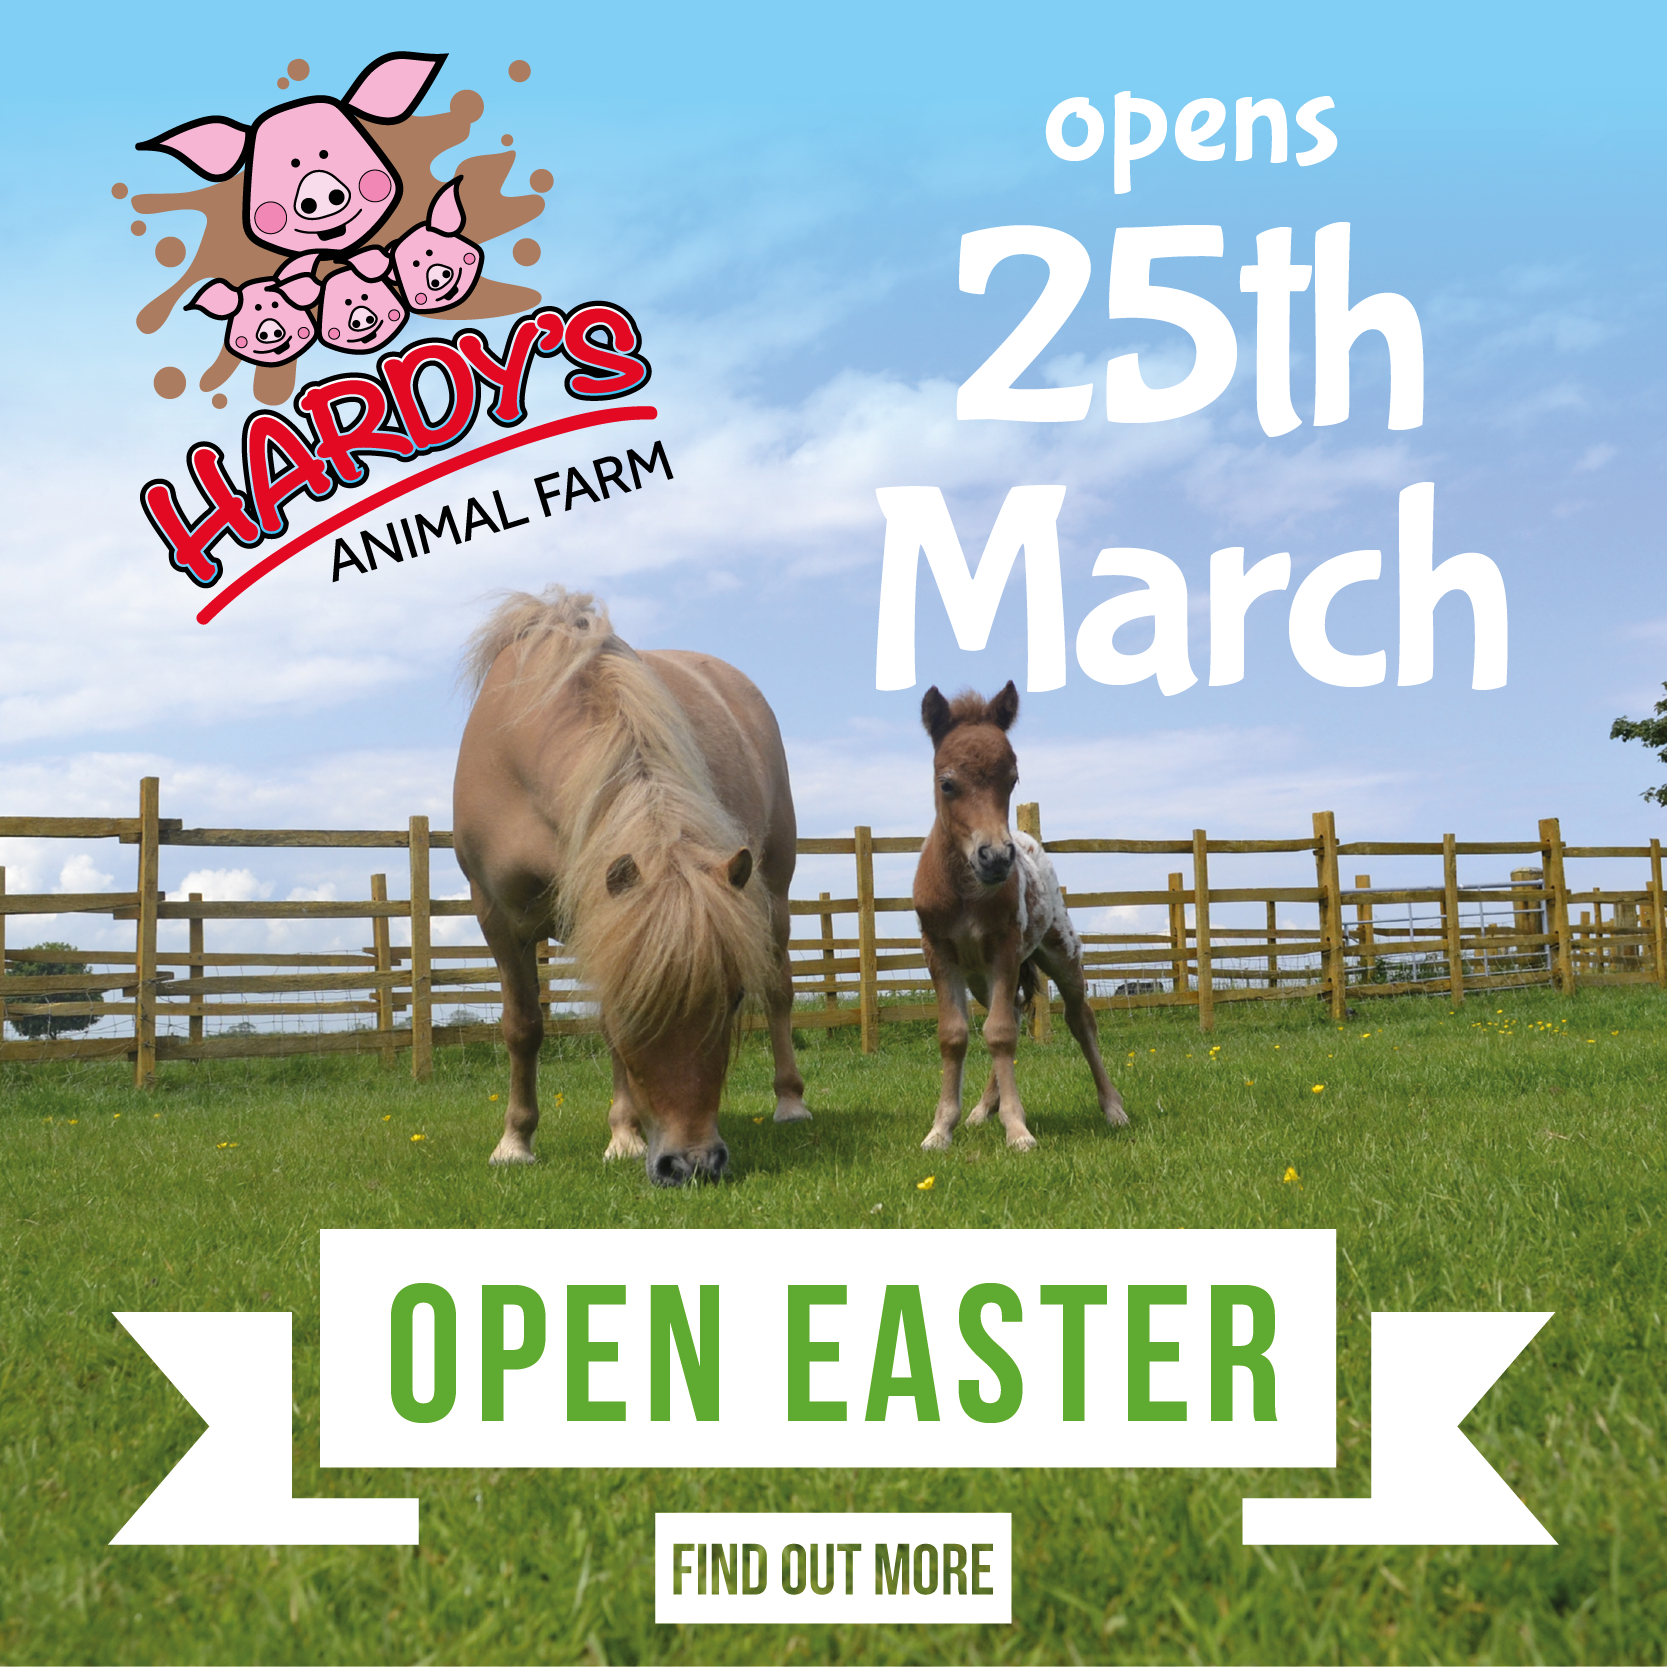 hardys animal farm easter opening times